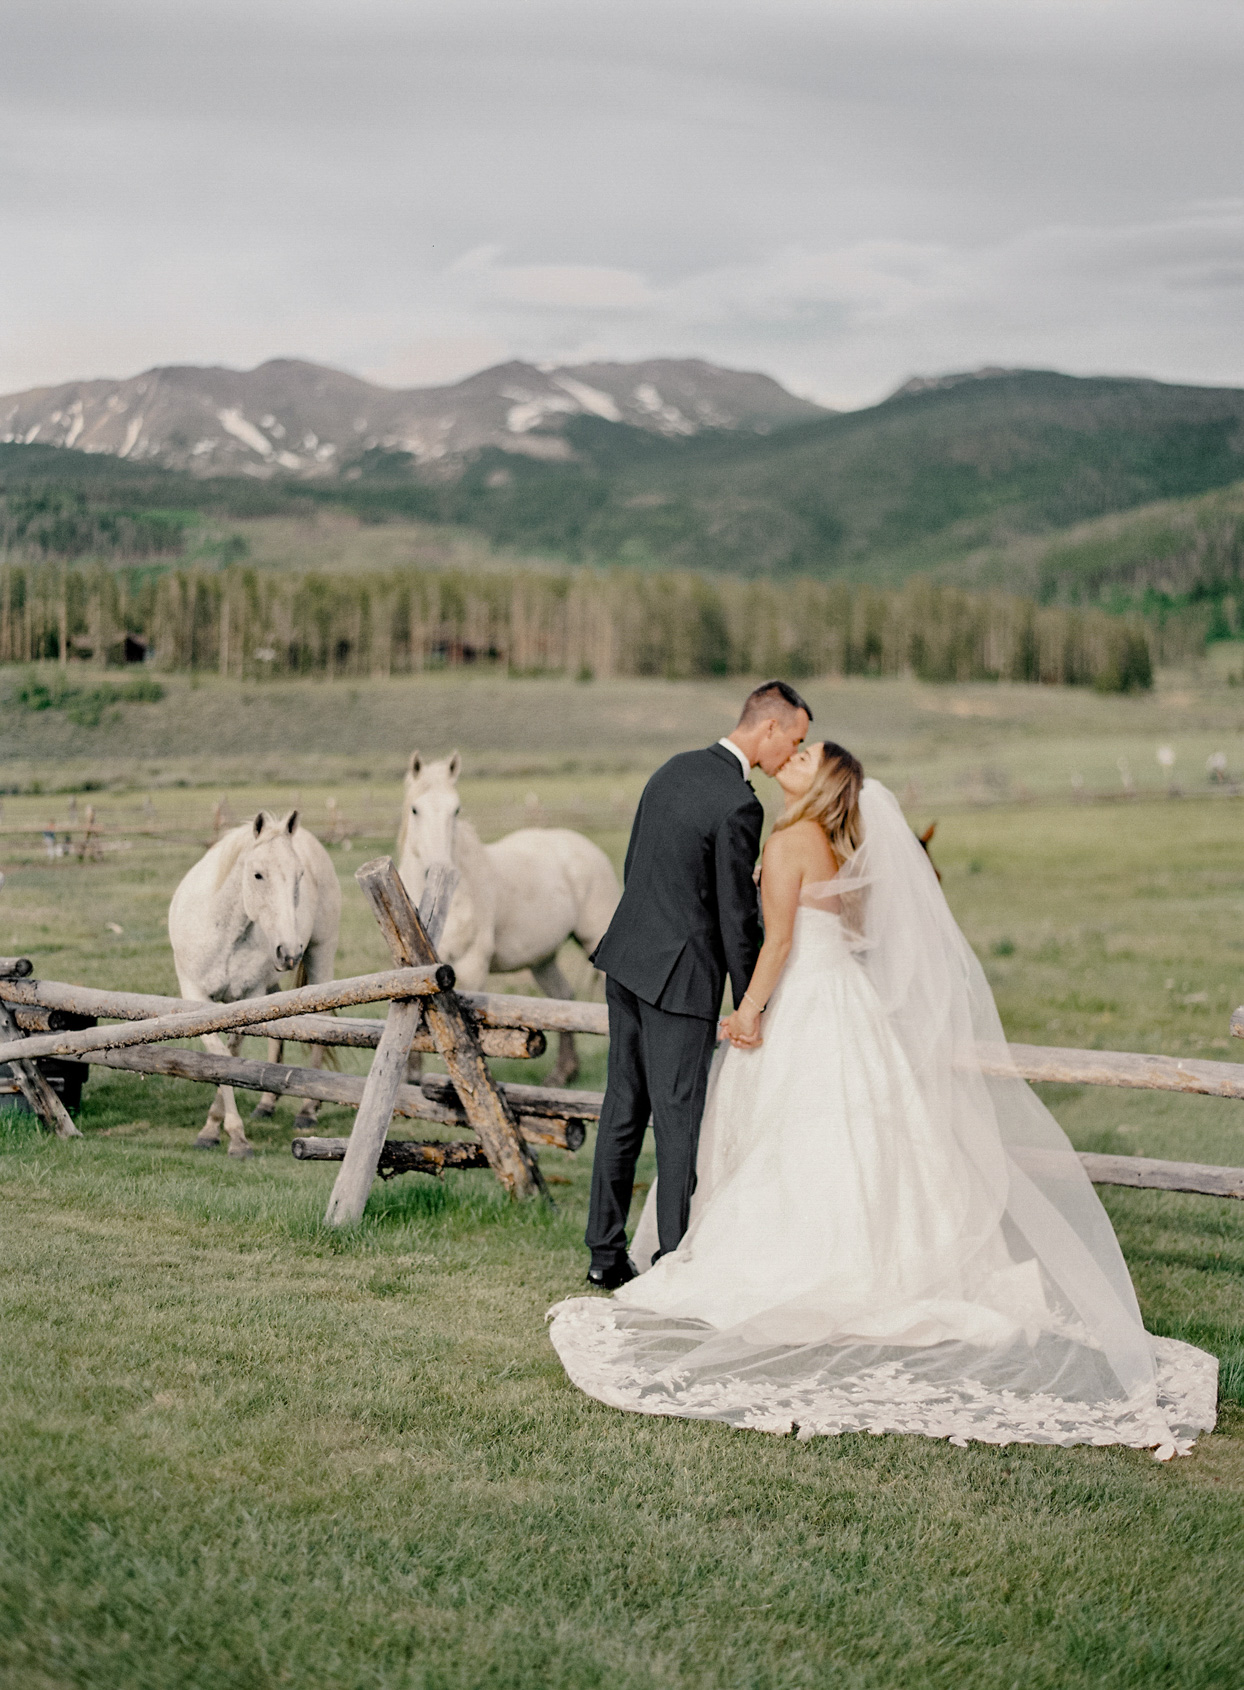 wedding couple kissing in field of horses